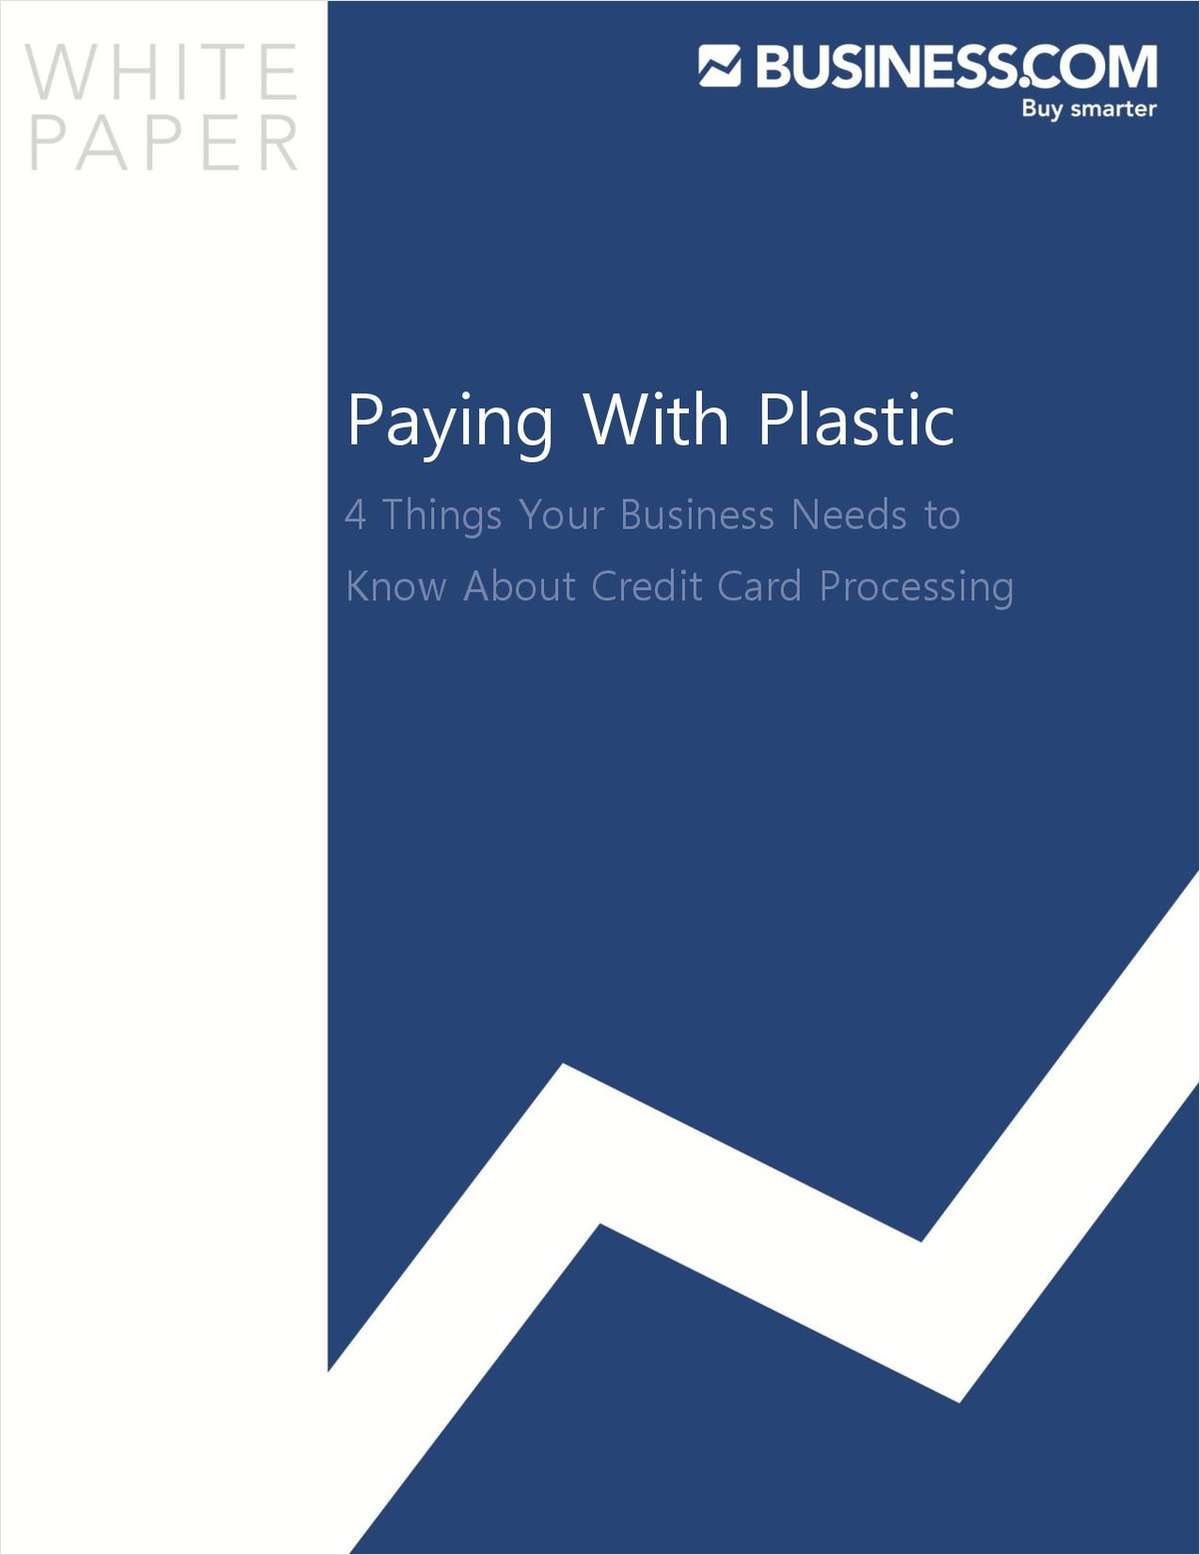 4 Things Your Business Needs to Know About Credit Card Processing